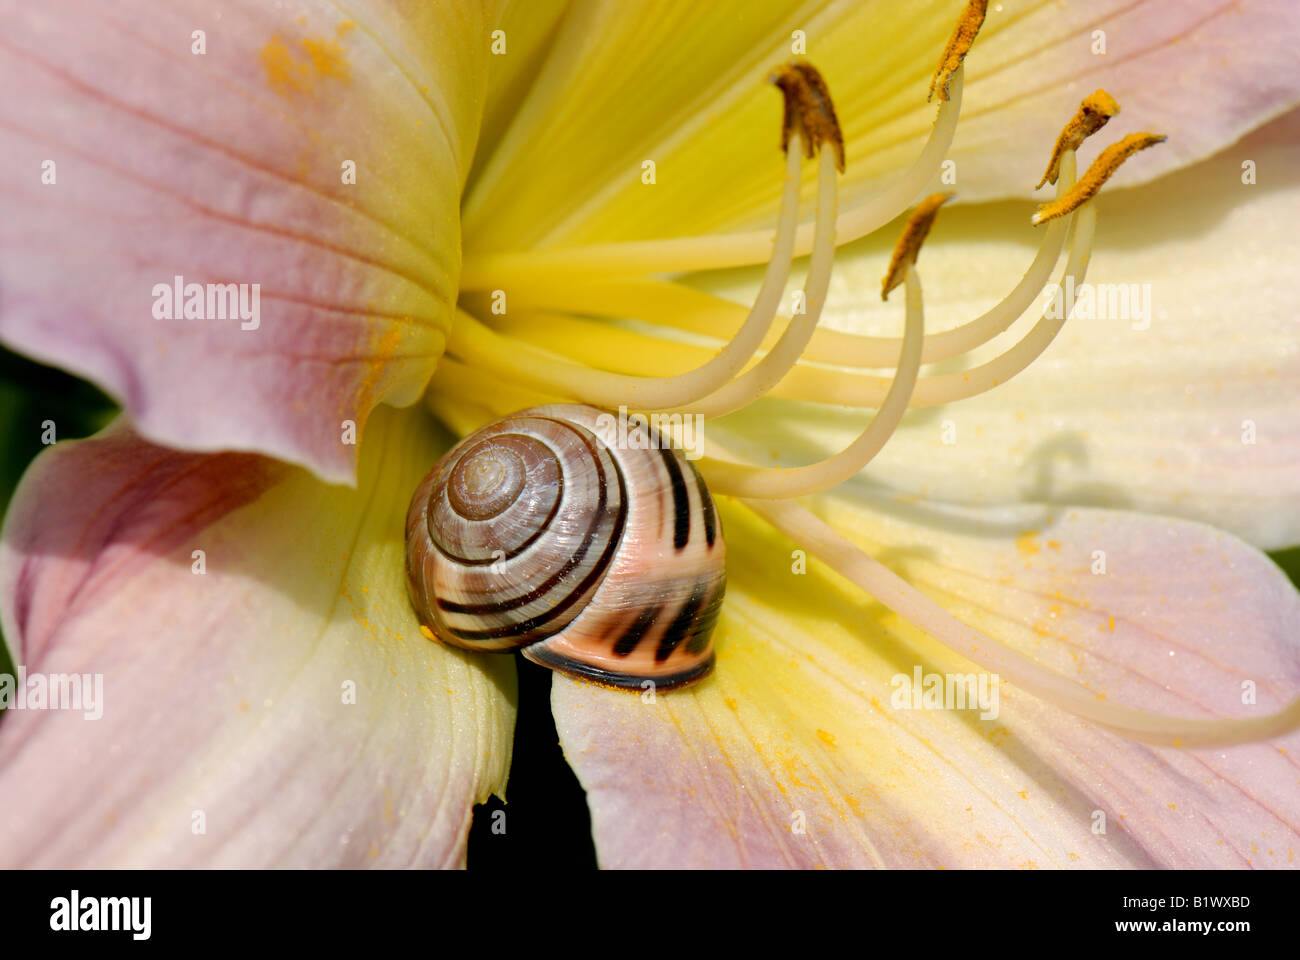 A highly coloured form of a dark lipped banded snail Cepaea nemoralis on a day lily flower Stock Photo